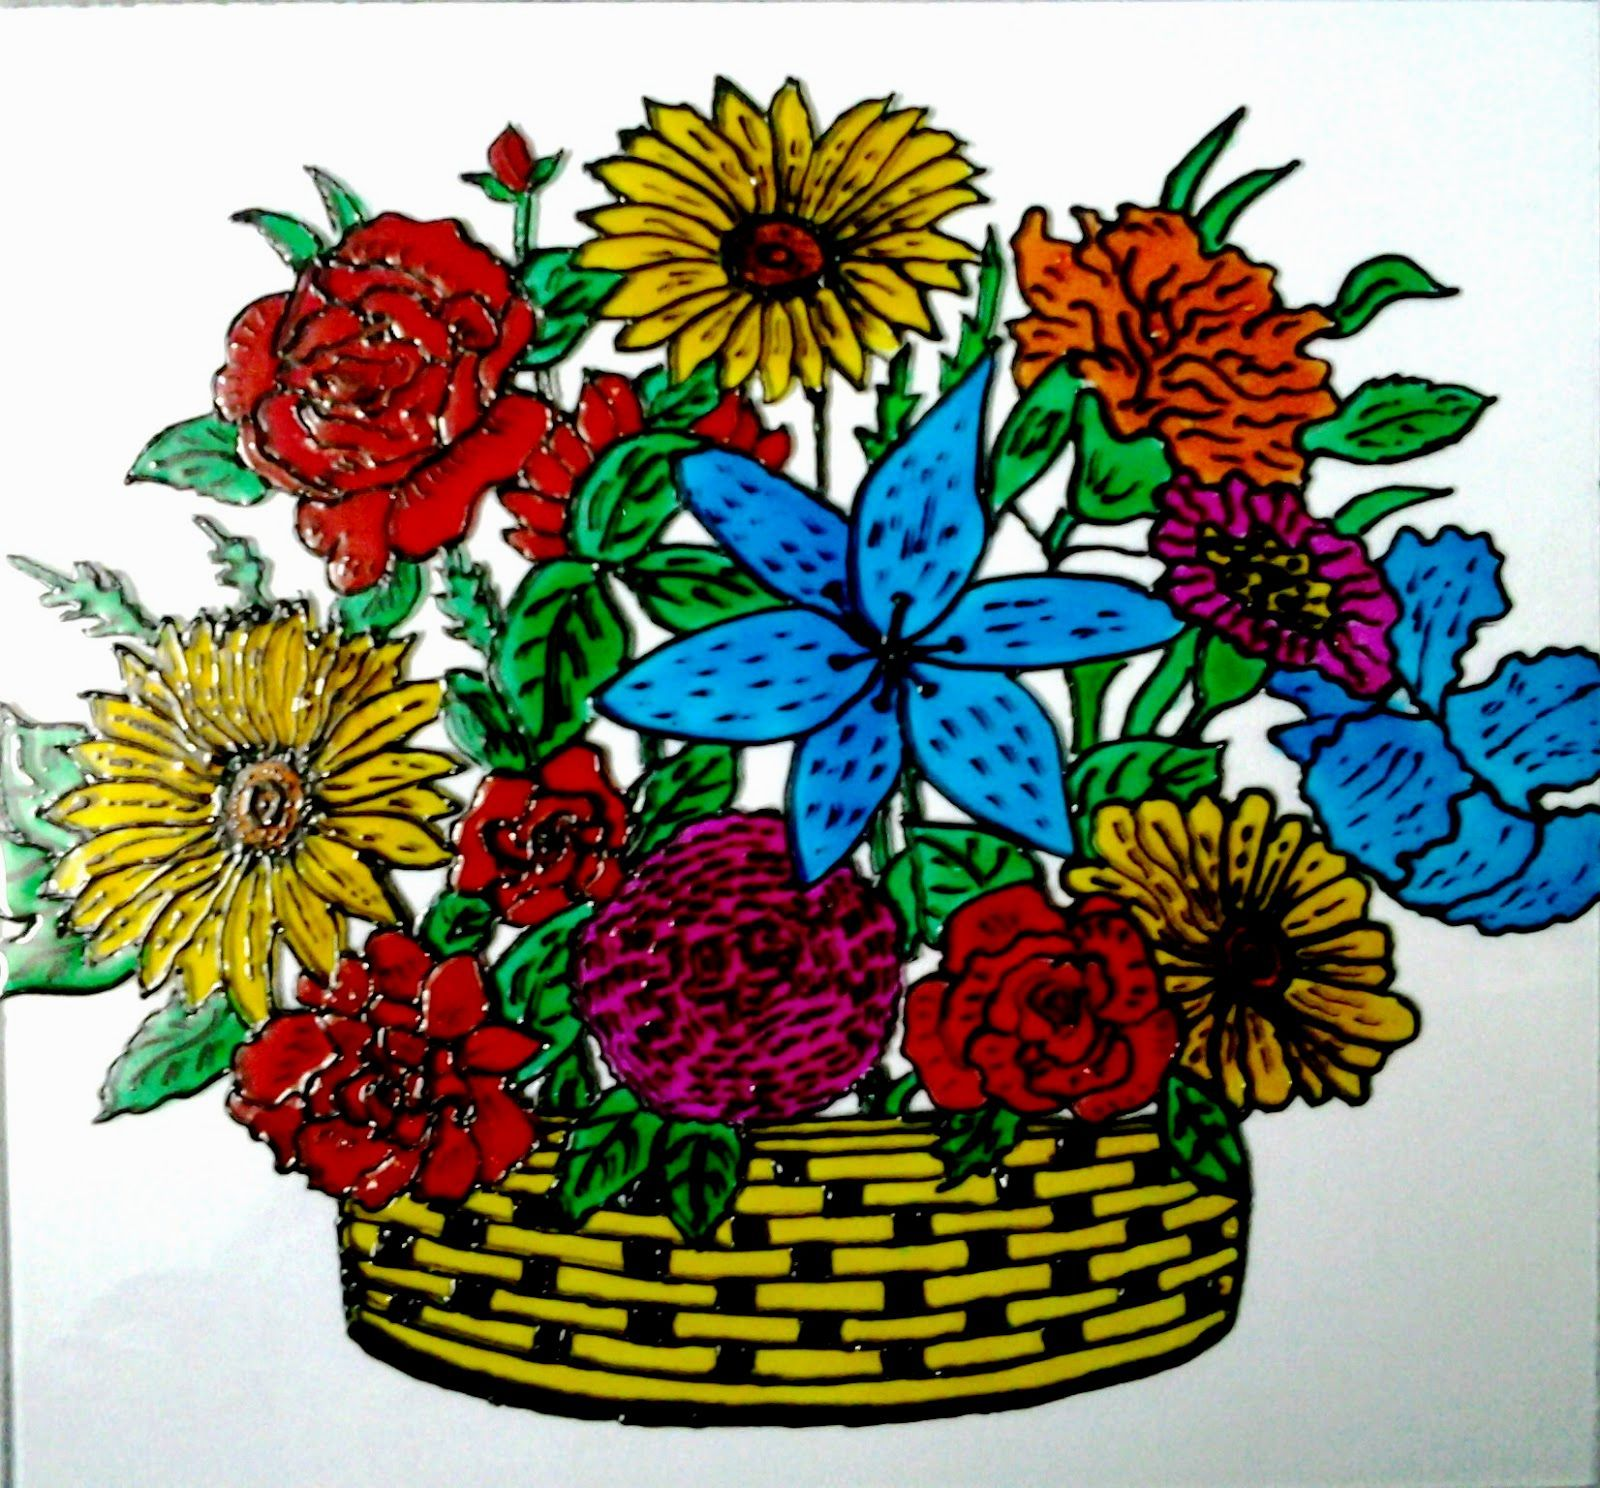 Glass painting pictures flowers visit web for high res pictures glass painting pictures flowers visit web for high res pictures izmirmasajfo Choice Image